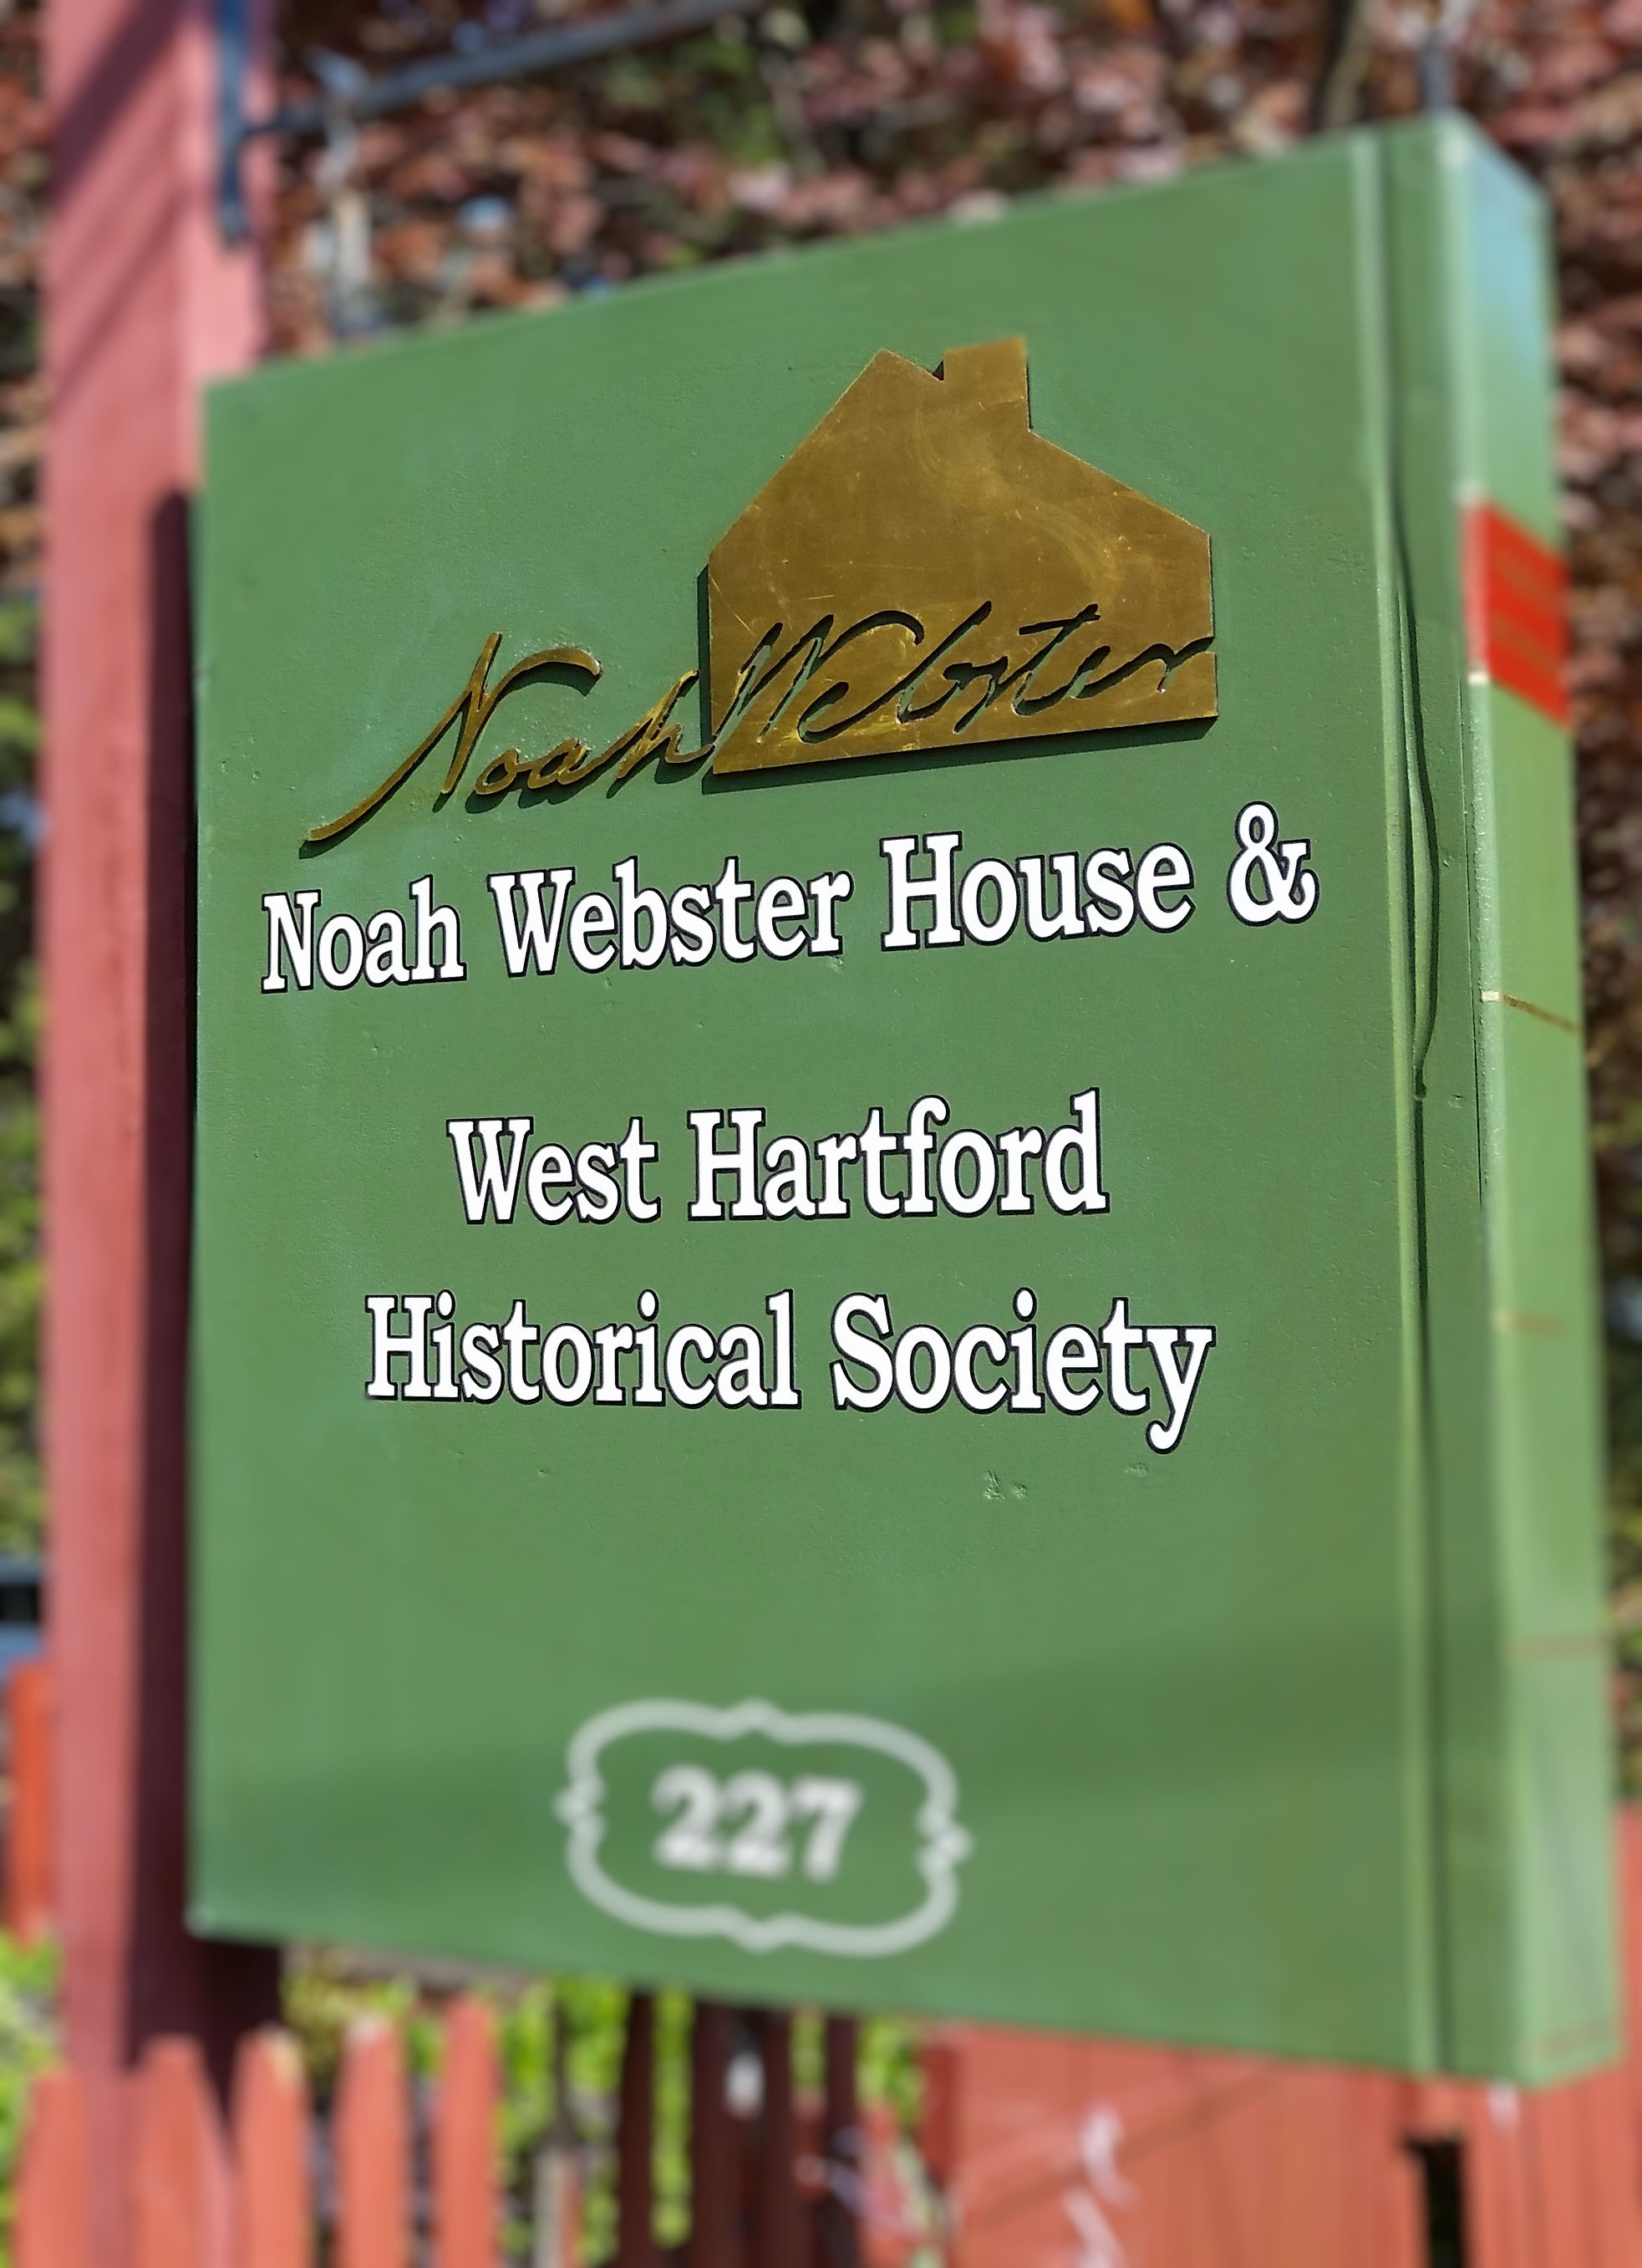 Noah Webster House and West Hartford Historical Society